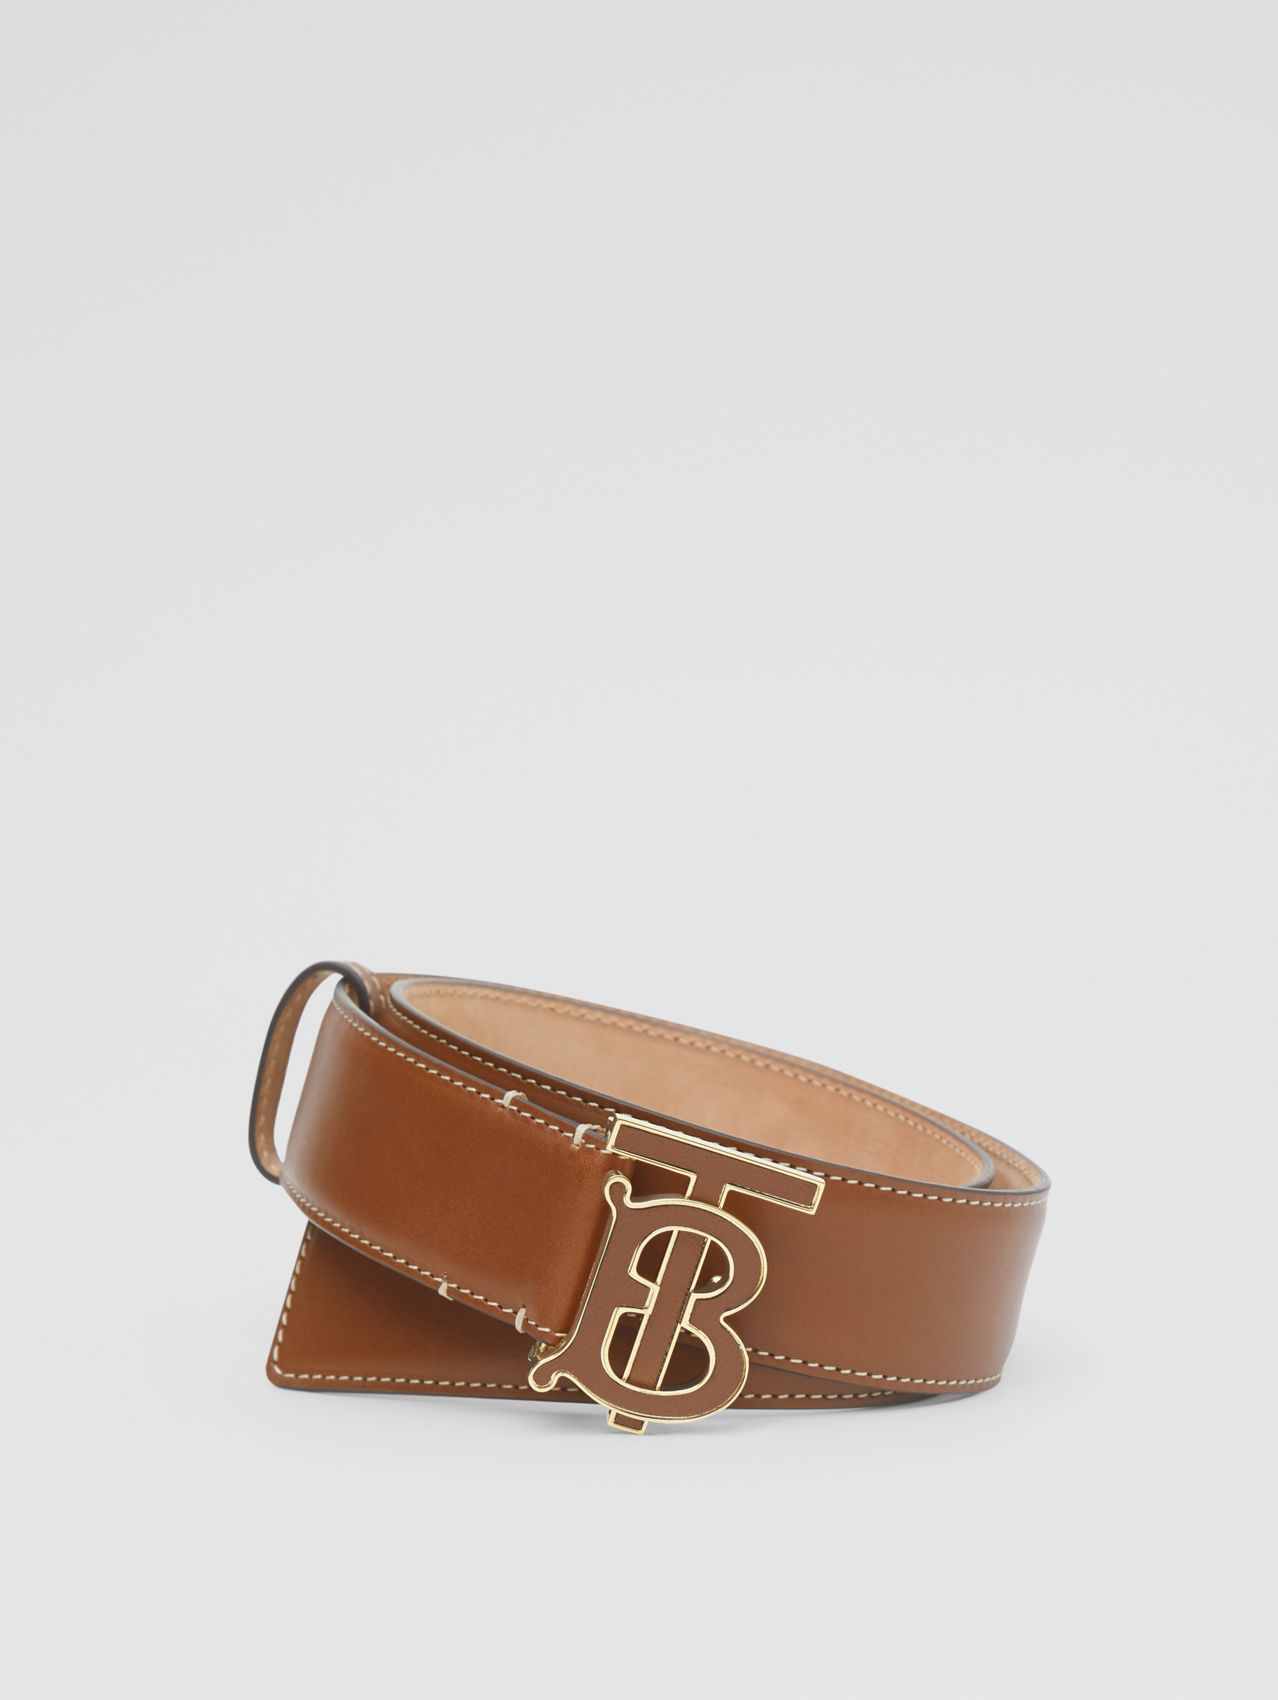 Monogram Motif Leather Belt in Tan